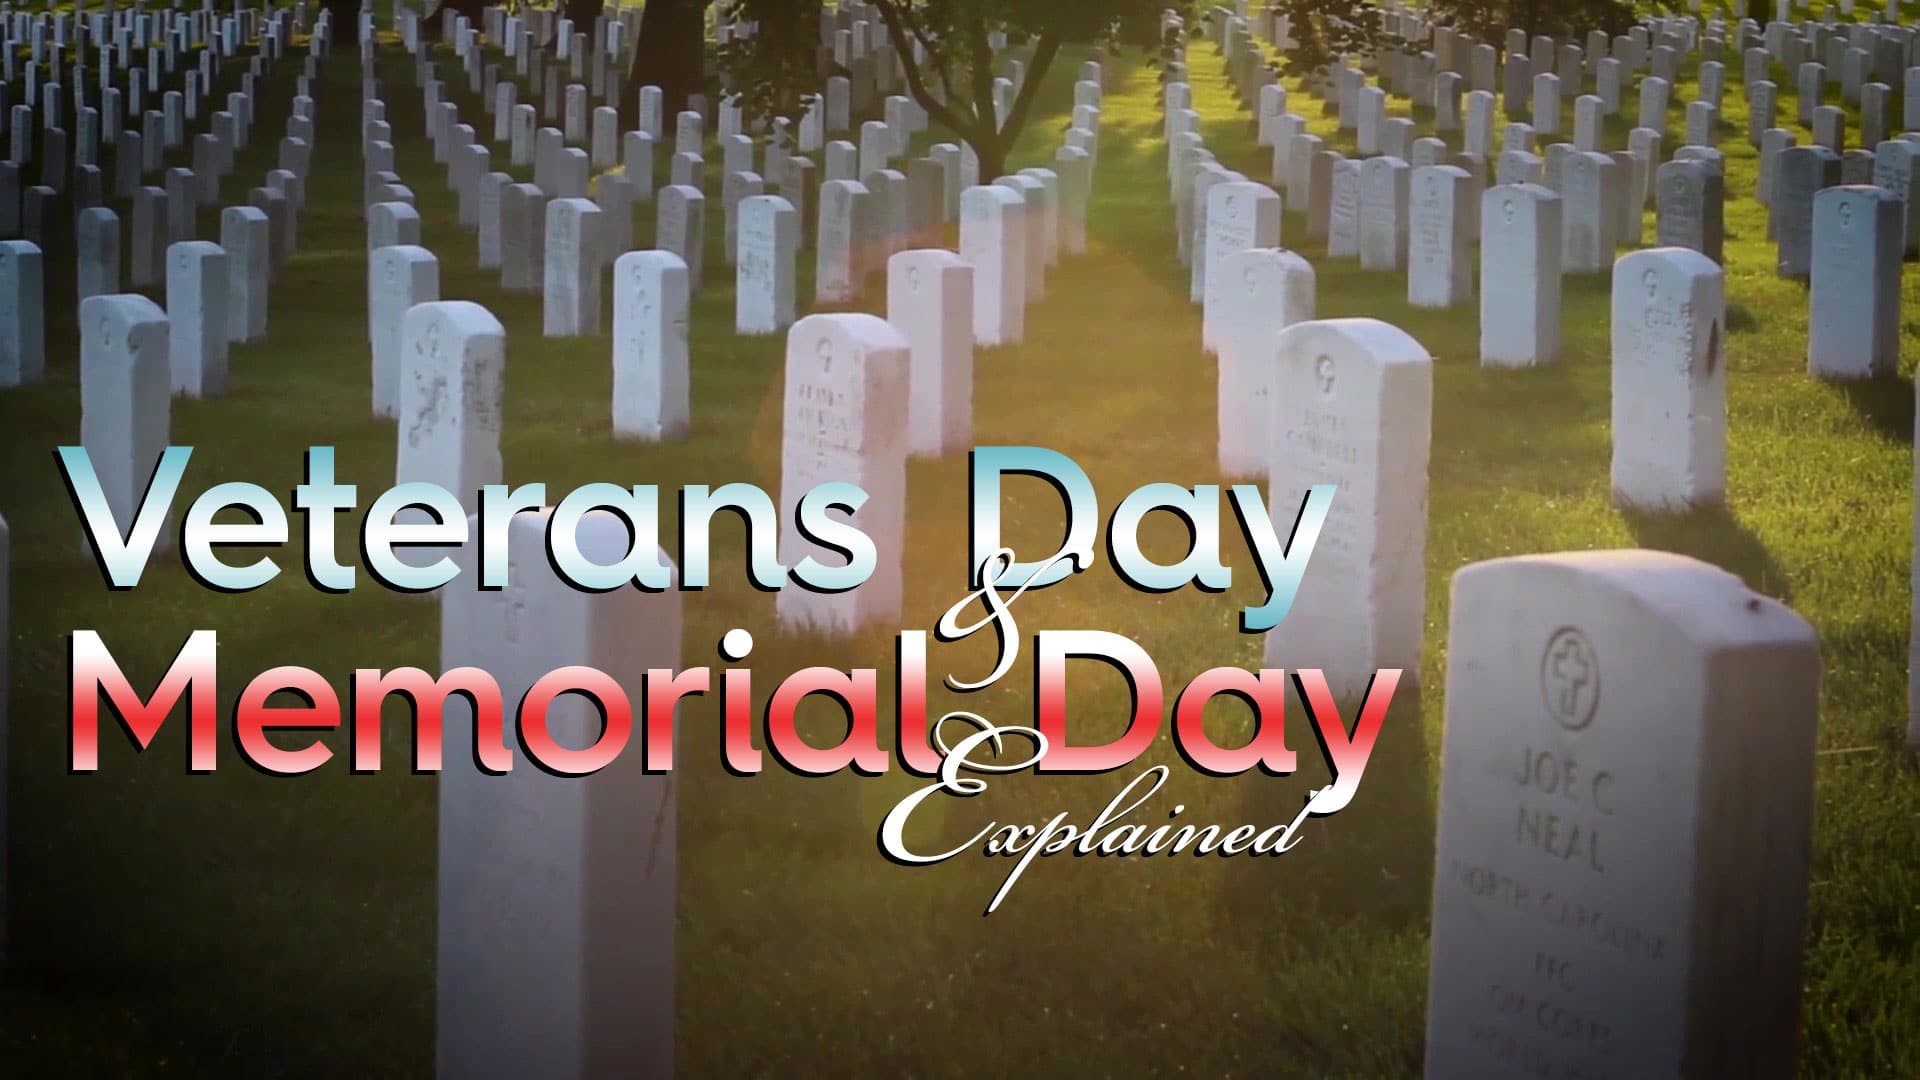 There's one big difference between Veterans Day and Memorial Day, though the history of each is rooted in the history of our country's wars.